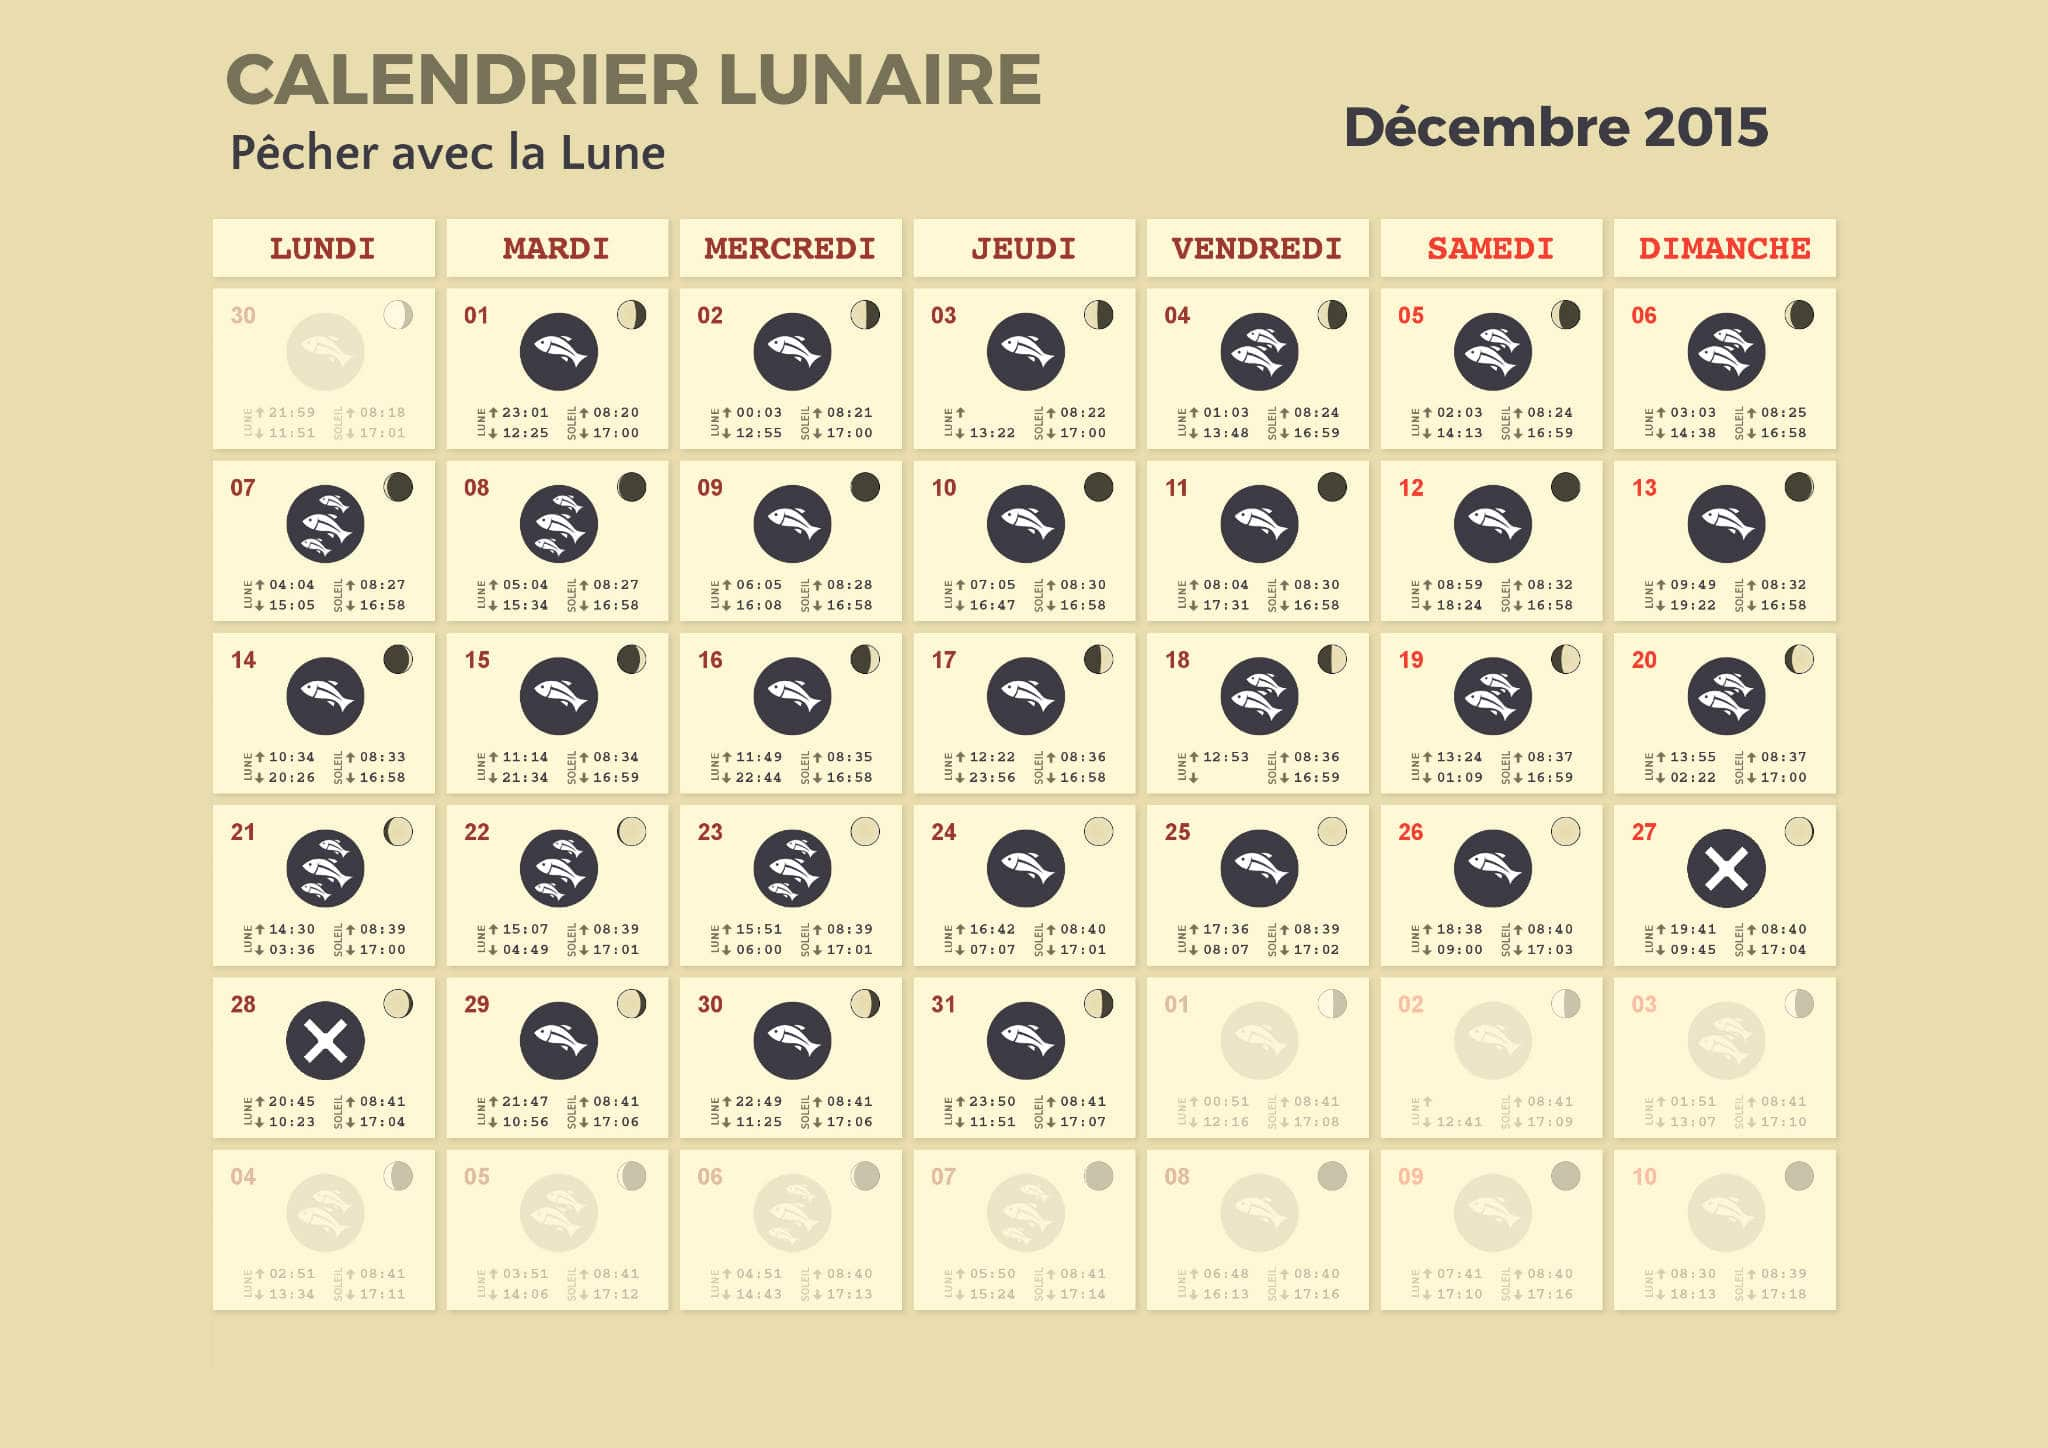 calendrier lunaire jardinage mars2014 jardiner avec la lune jpg quotes. Black Bedroom Furniture Sets. Home Design Ideas